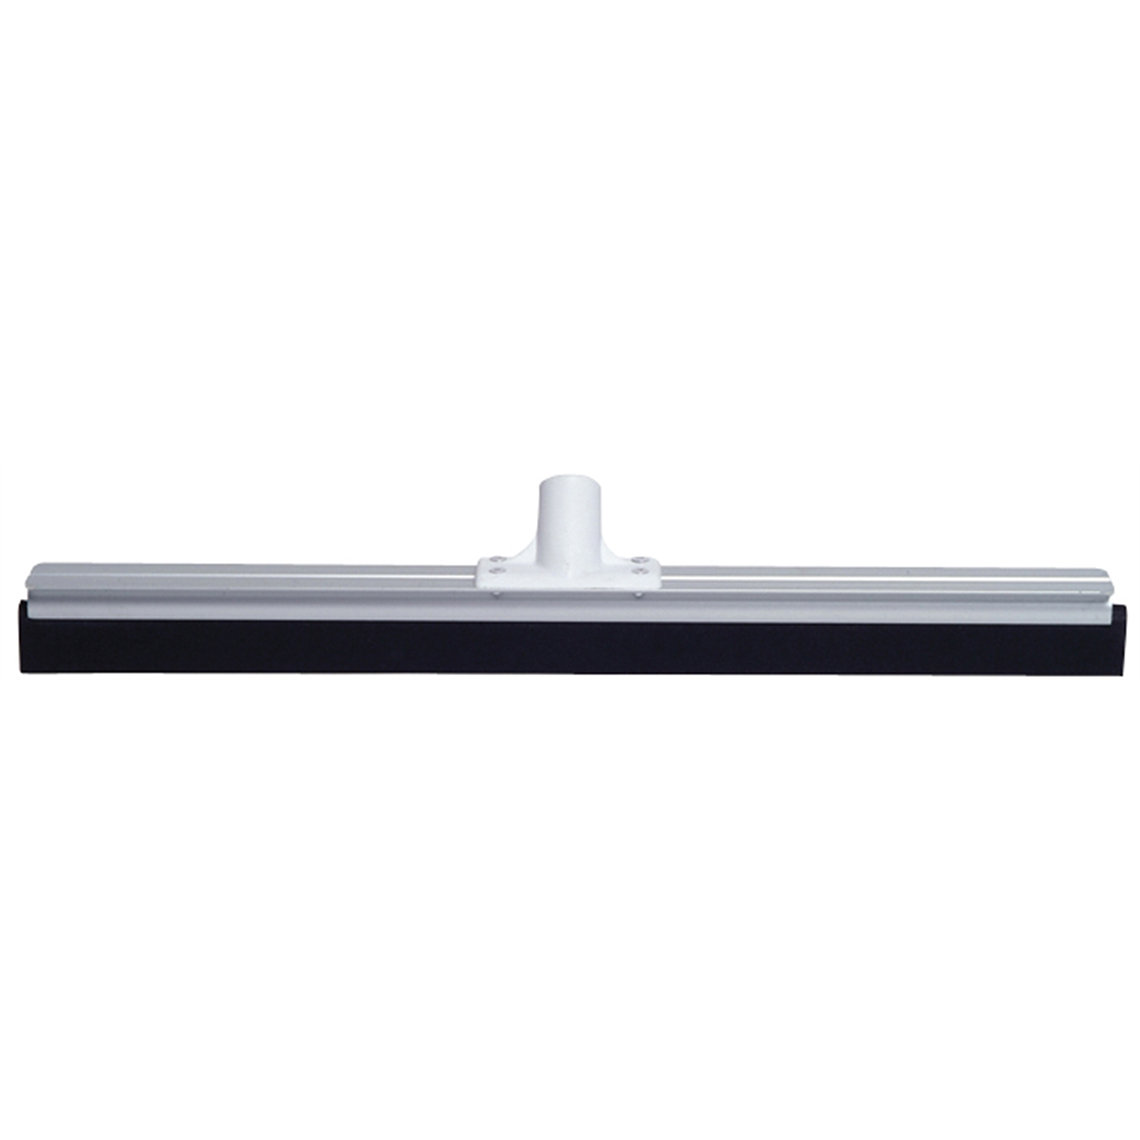 Aluminium Floor Squeegee - 600mm - White